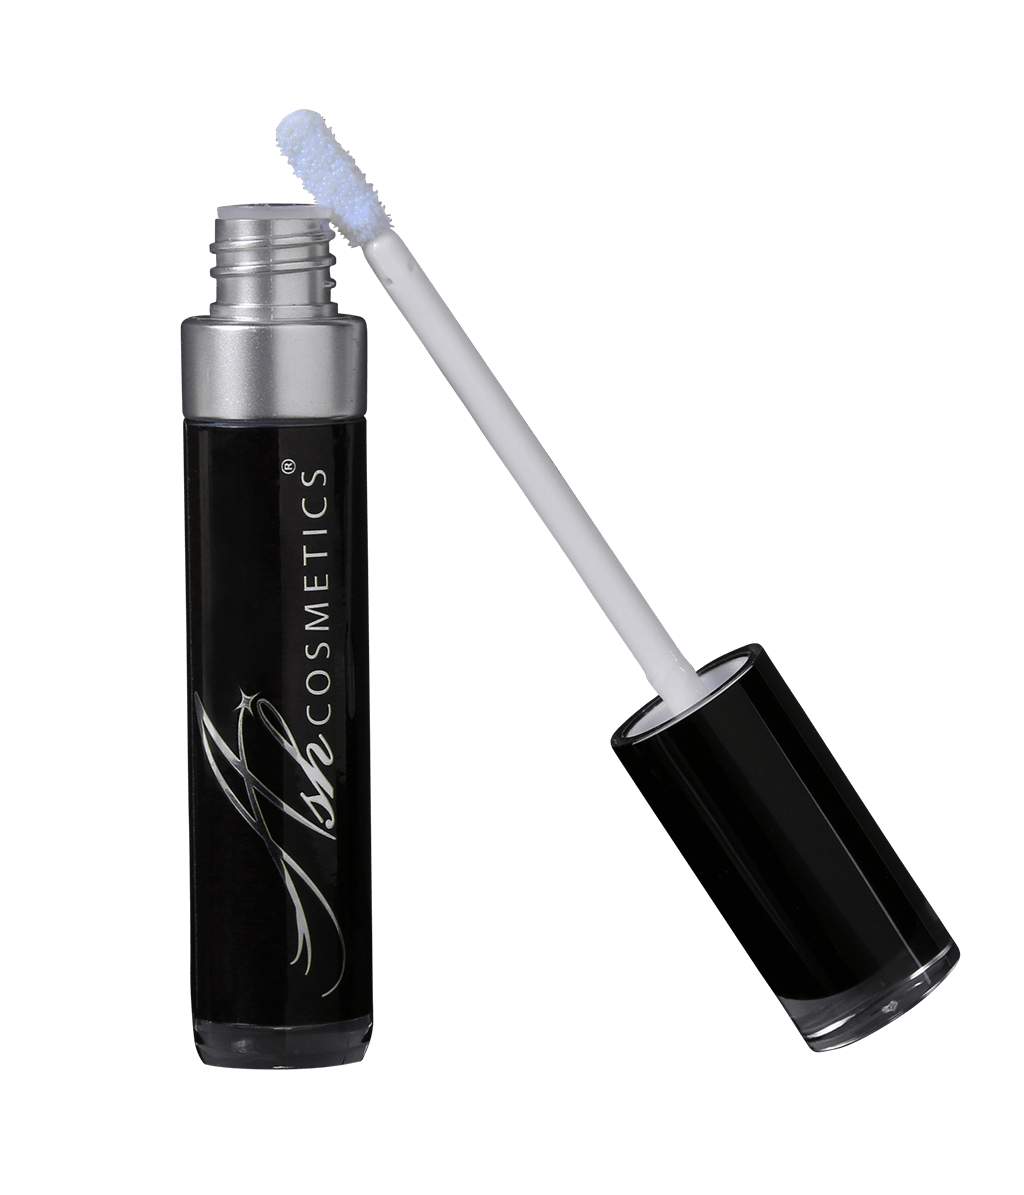 AshcosmeticsSpecial Effect Waterproof Eye, Face and Body Glitter Adhesive